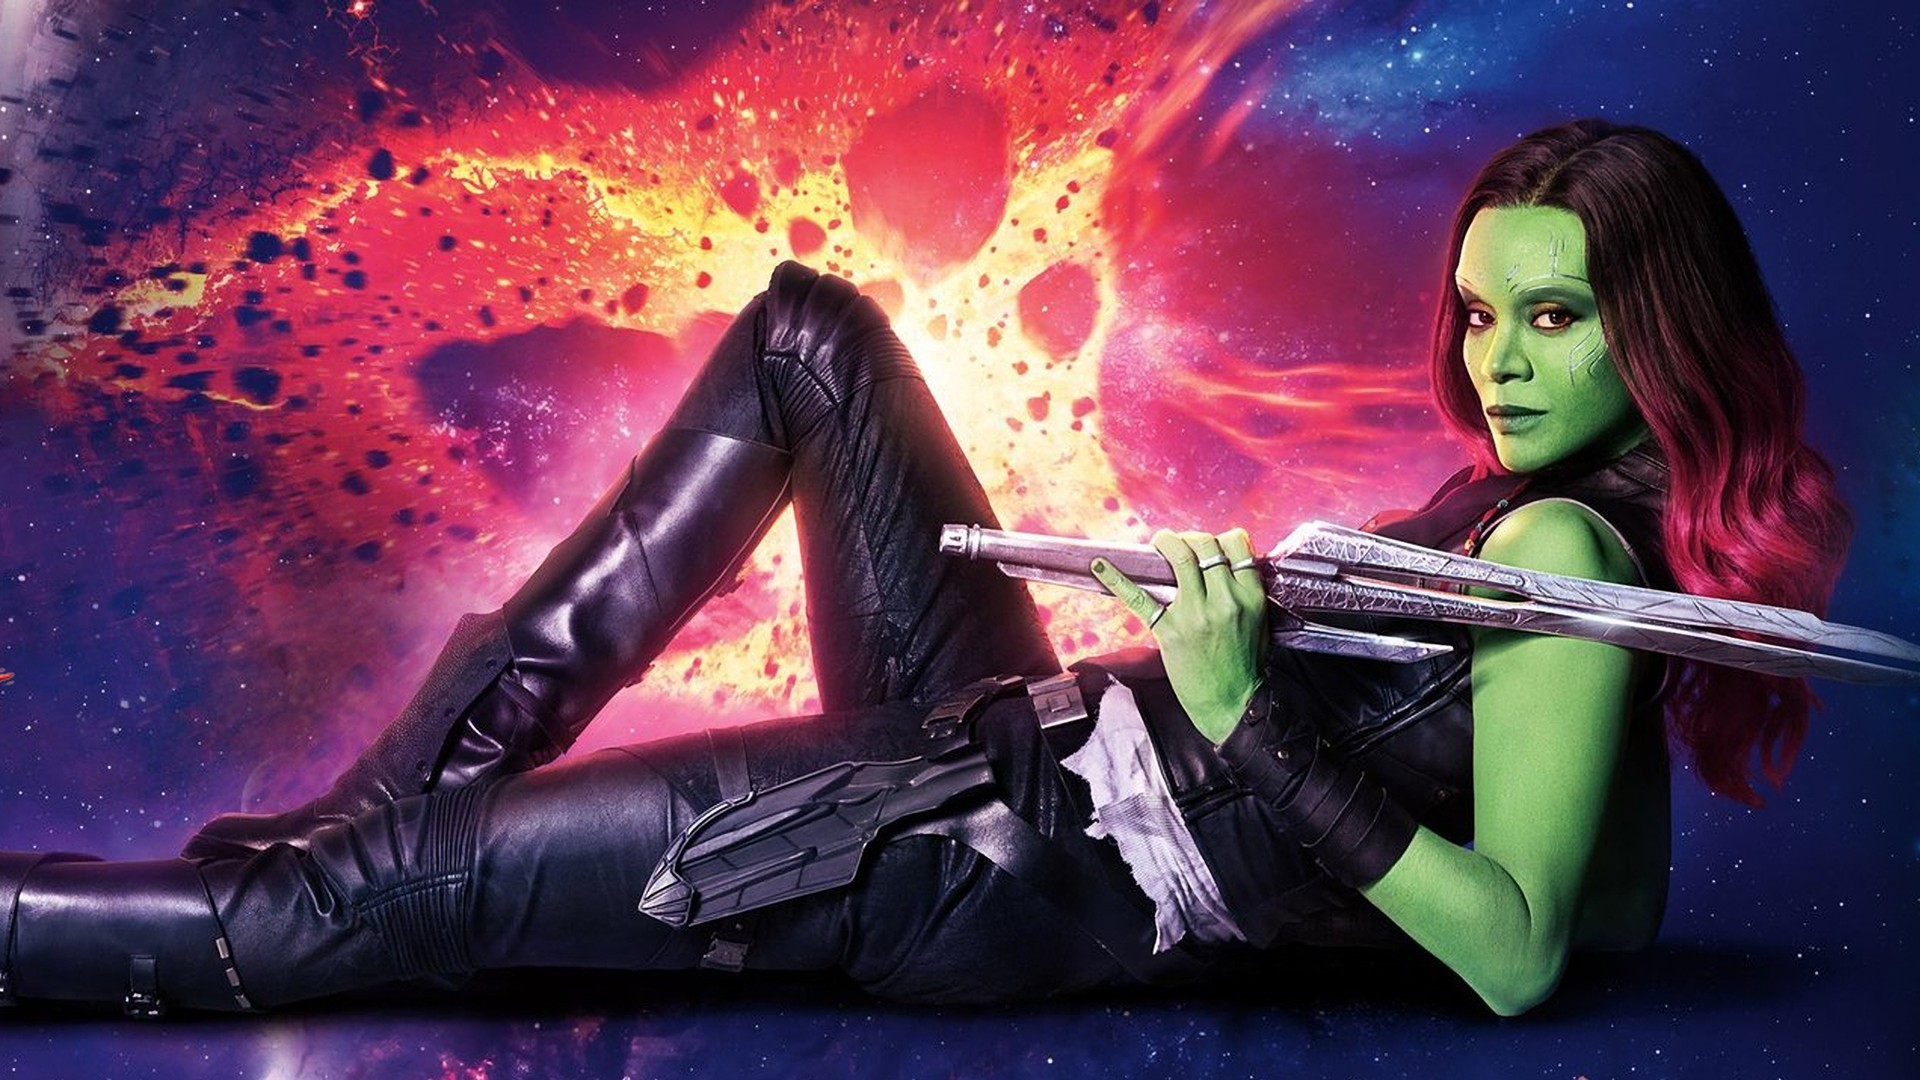 Res: 1920x1080, Gamora, Guardians of the Galaxy Vol. 2, Marvel Cinematic Universe,  Guardians of the Galaxy Wallpapers HD / Desktop and Mobile Backgrounds